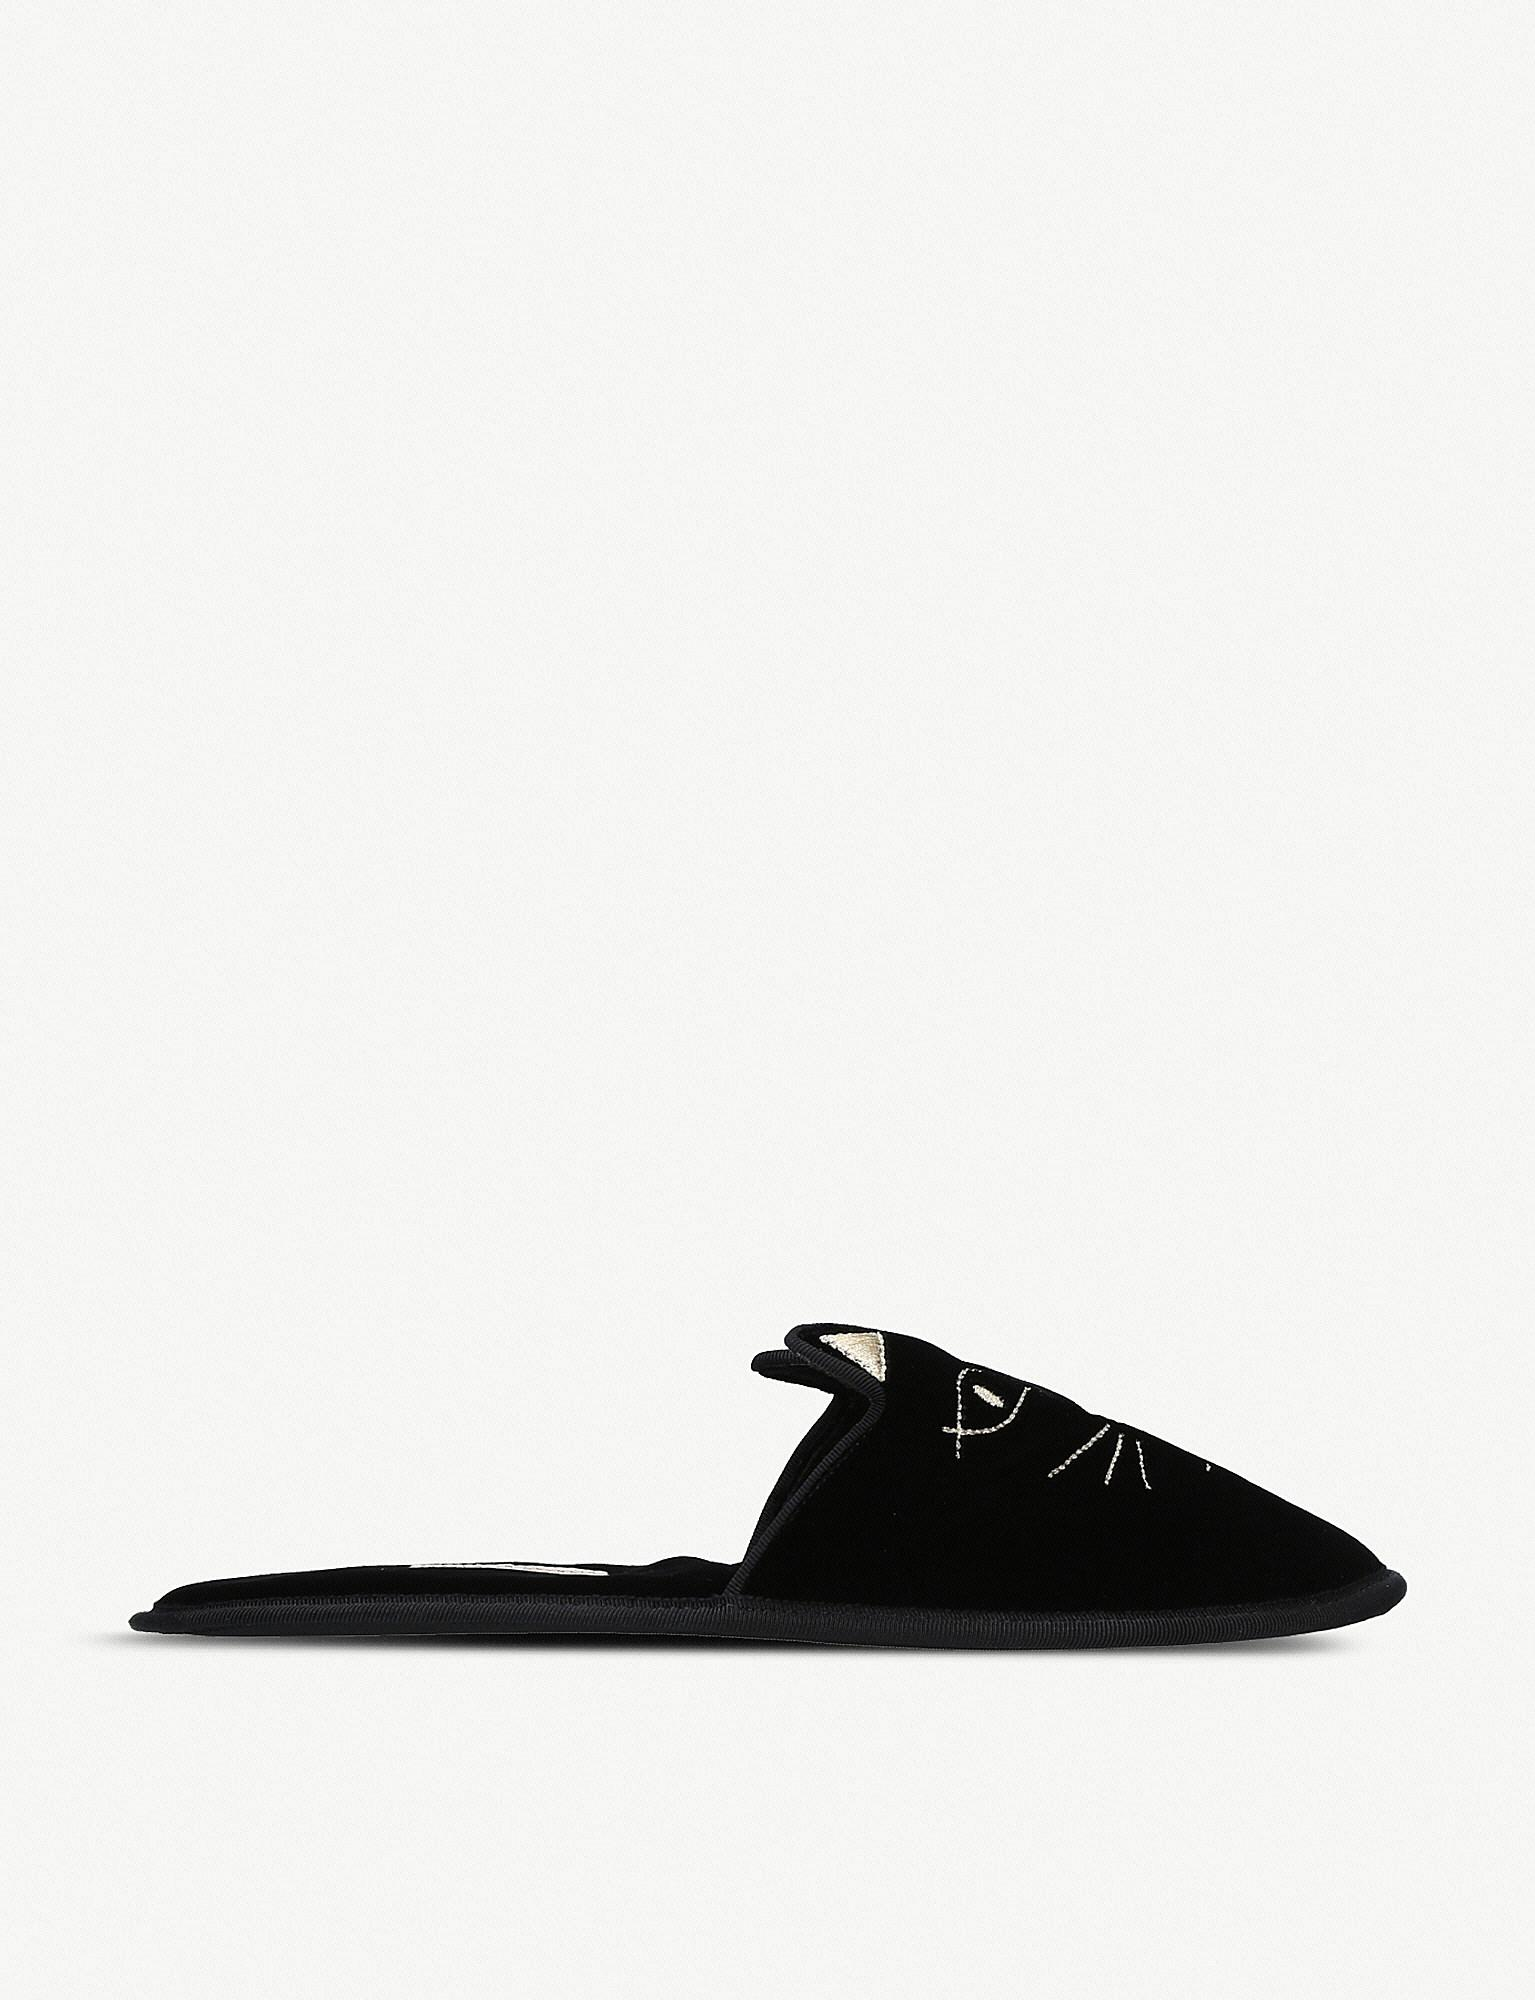 Charlotte Olympia House Cats Embroidered Velvet Slippers in Black - Lyst f404afd7839f